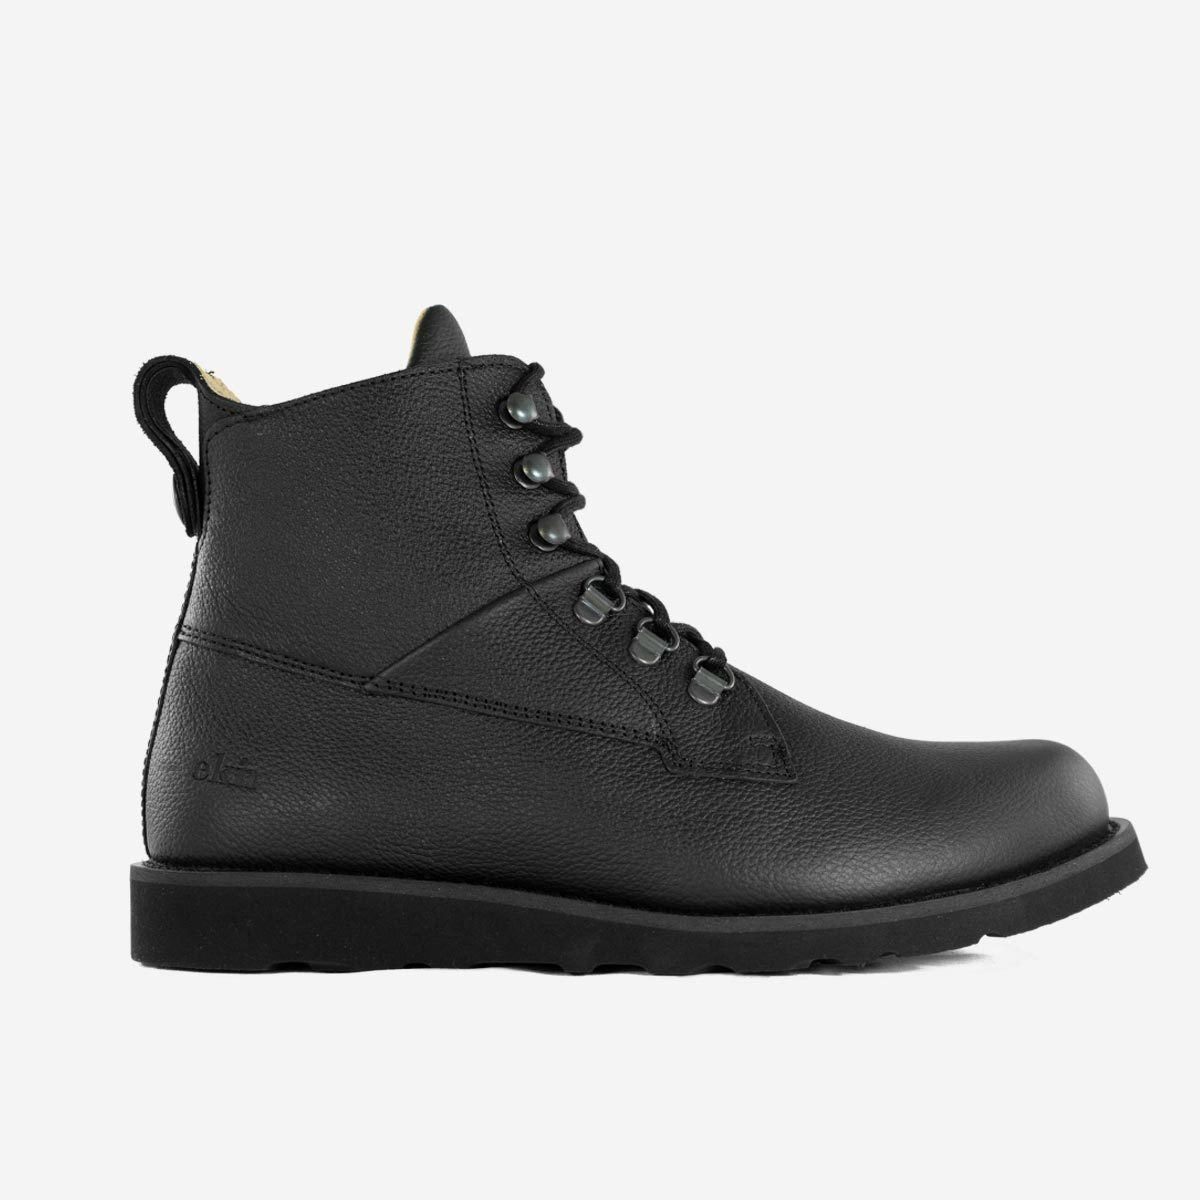 EKN Cedar Bott Black Leather Black Sole